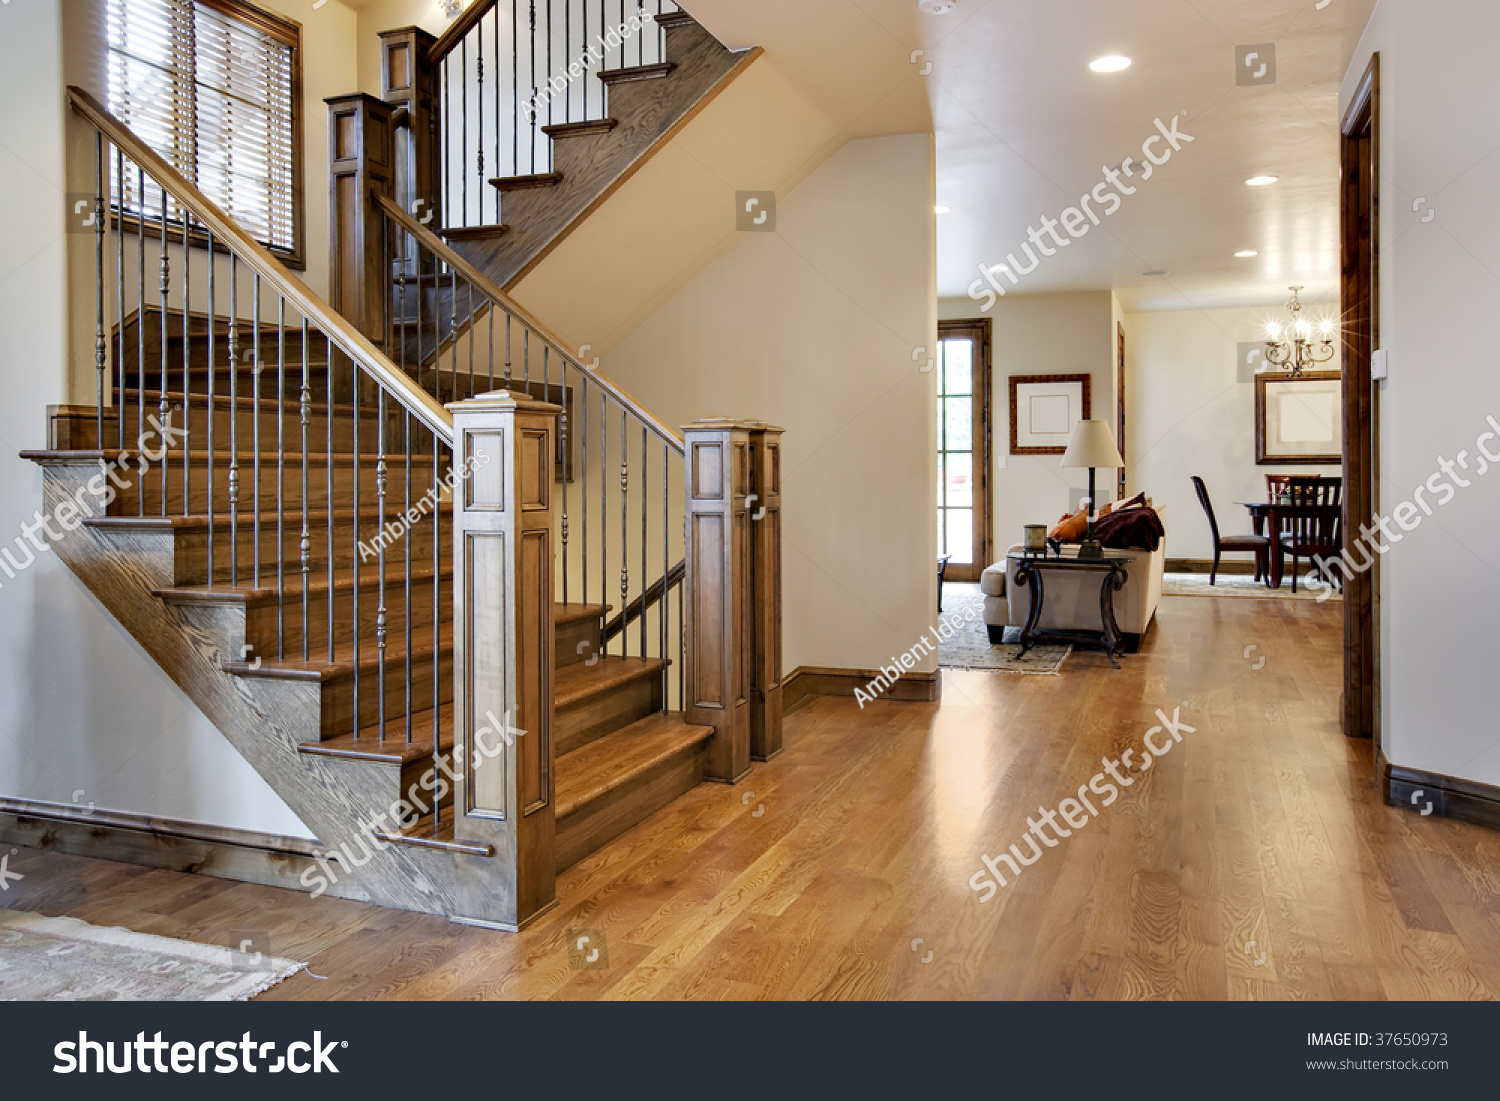 Foyer Entrance Hall Crossword Clue : Wood floored home entrance hall stock photo